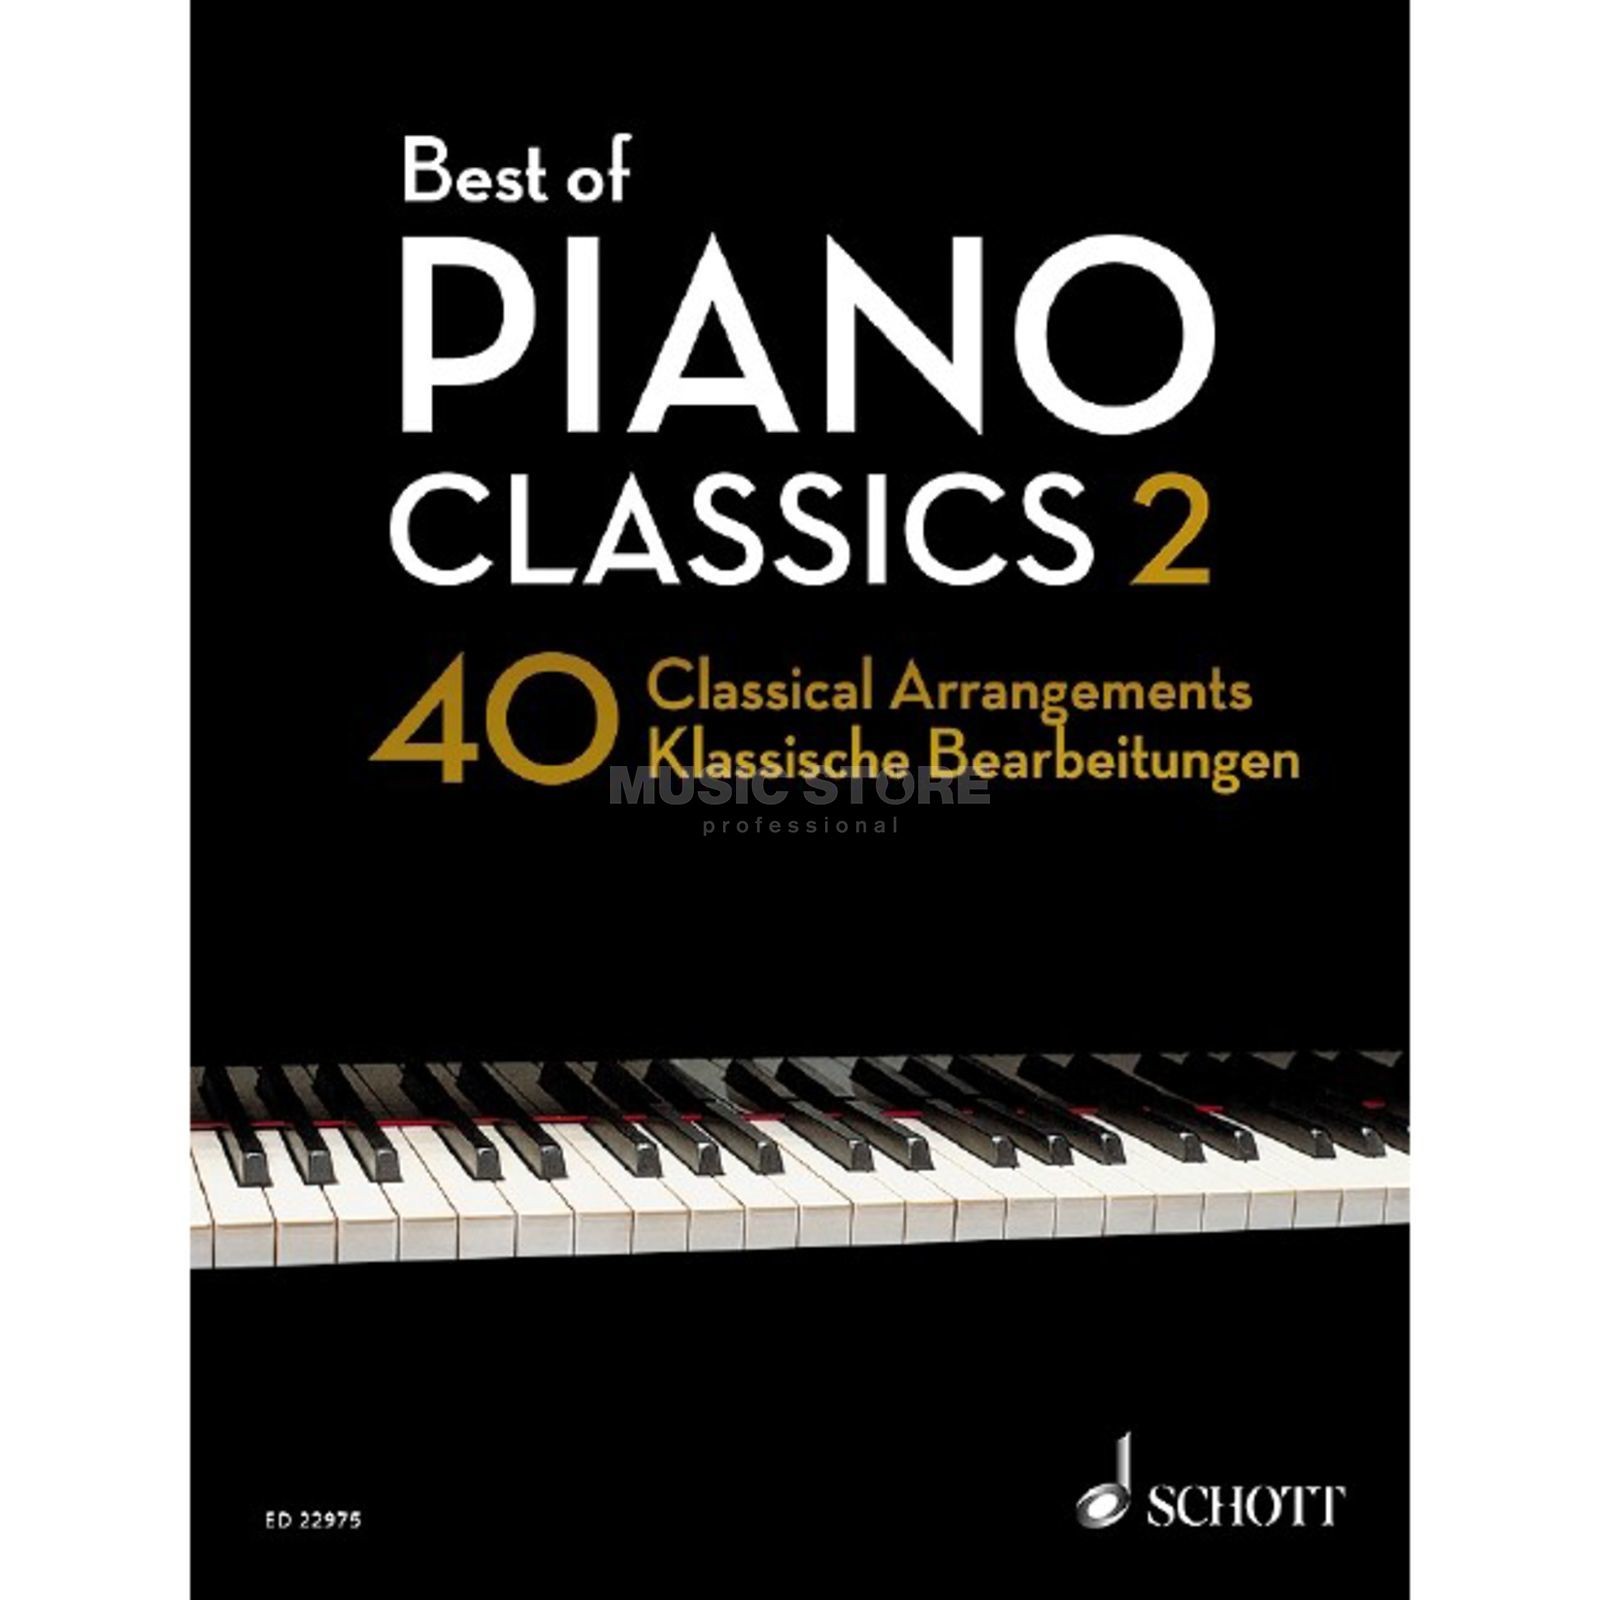 Schott Music Best of Piano Classics 2 Product Image